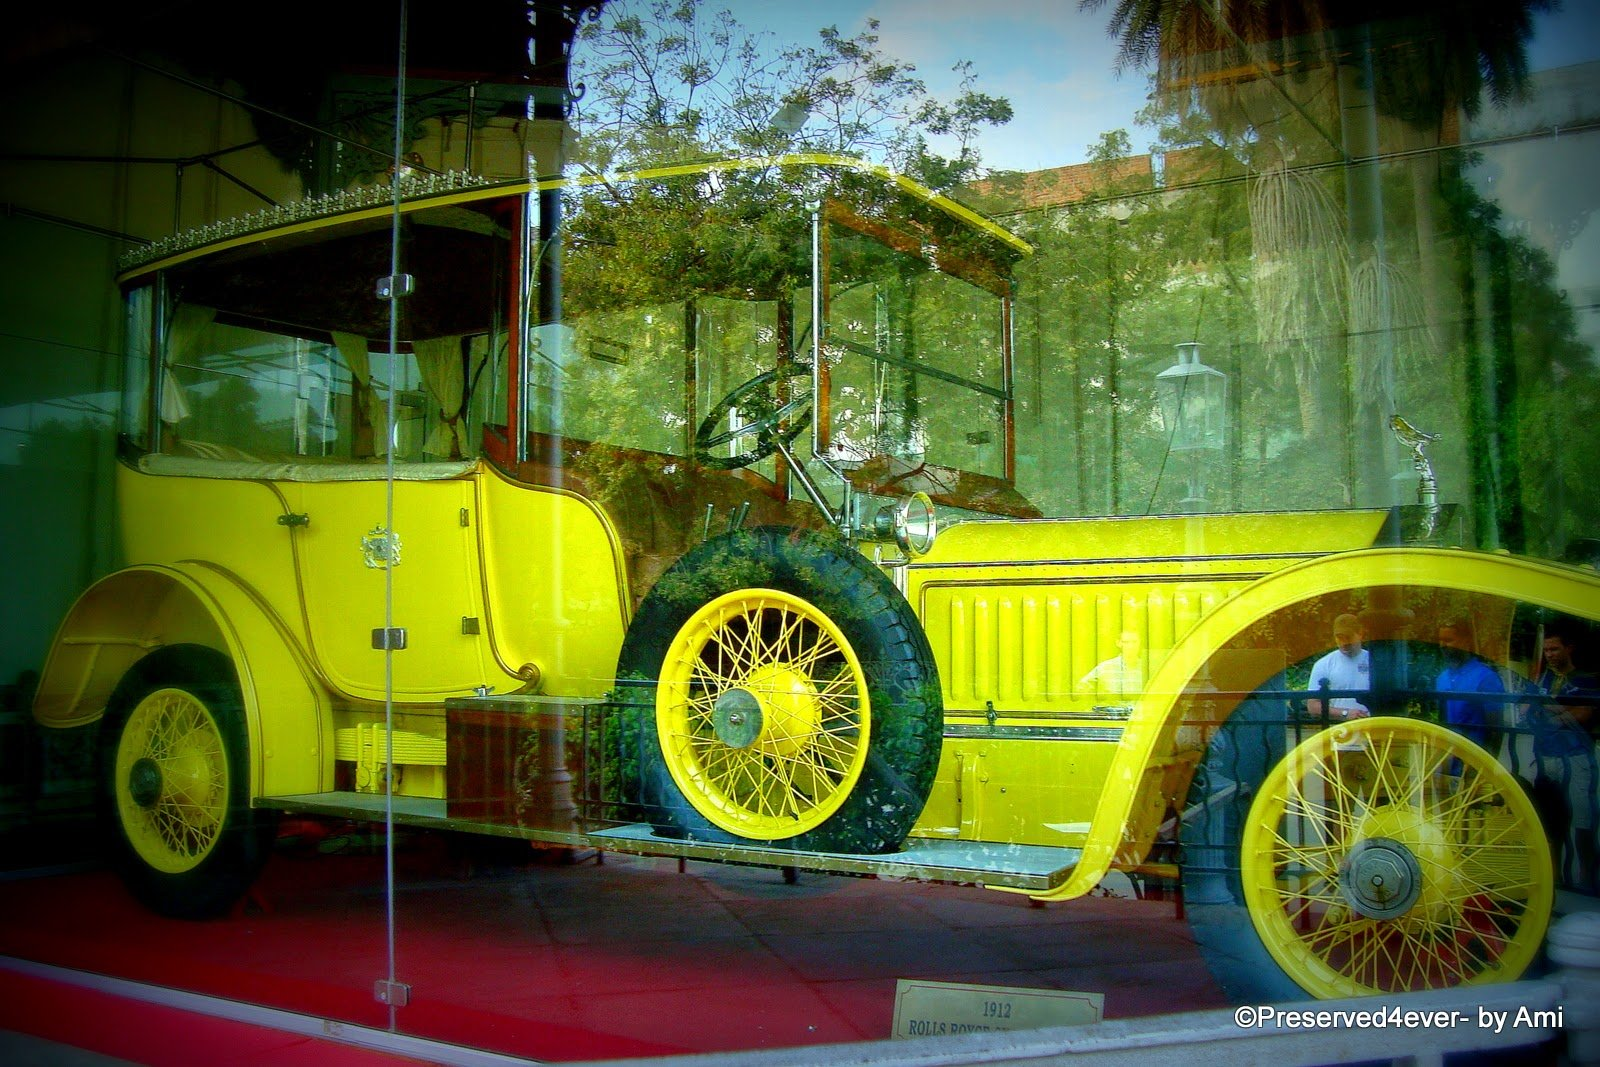 Rolls Royce from the Nizam's collection, Chowmahalla Palace, Hyderabad